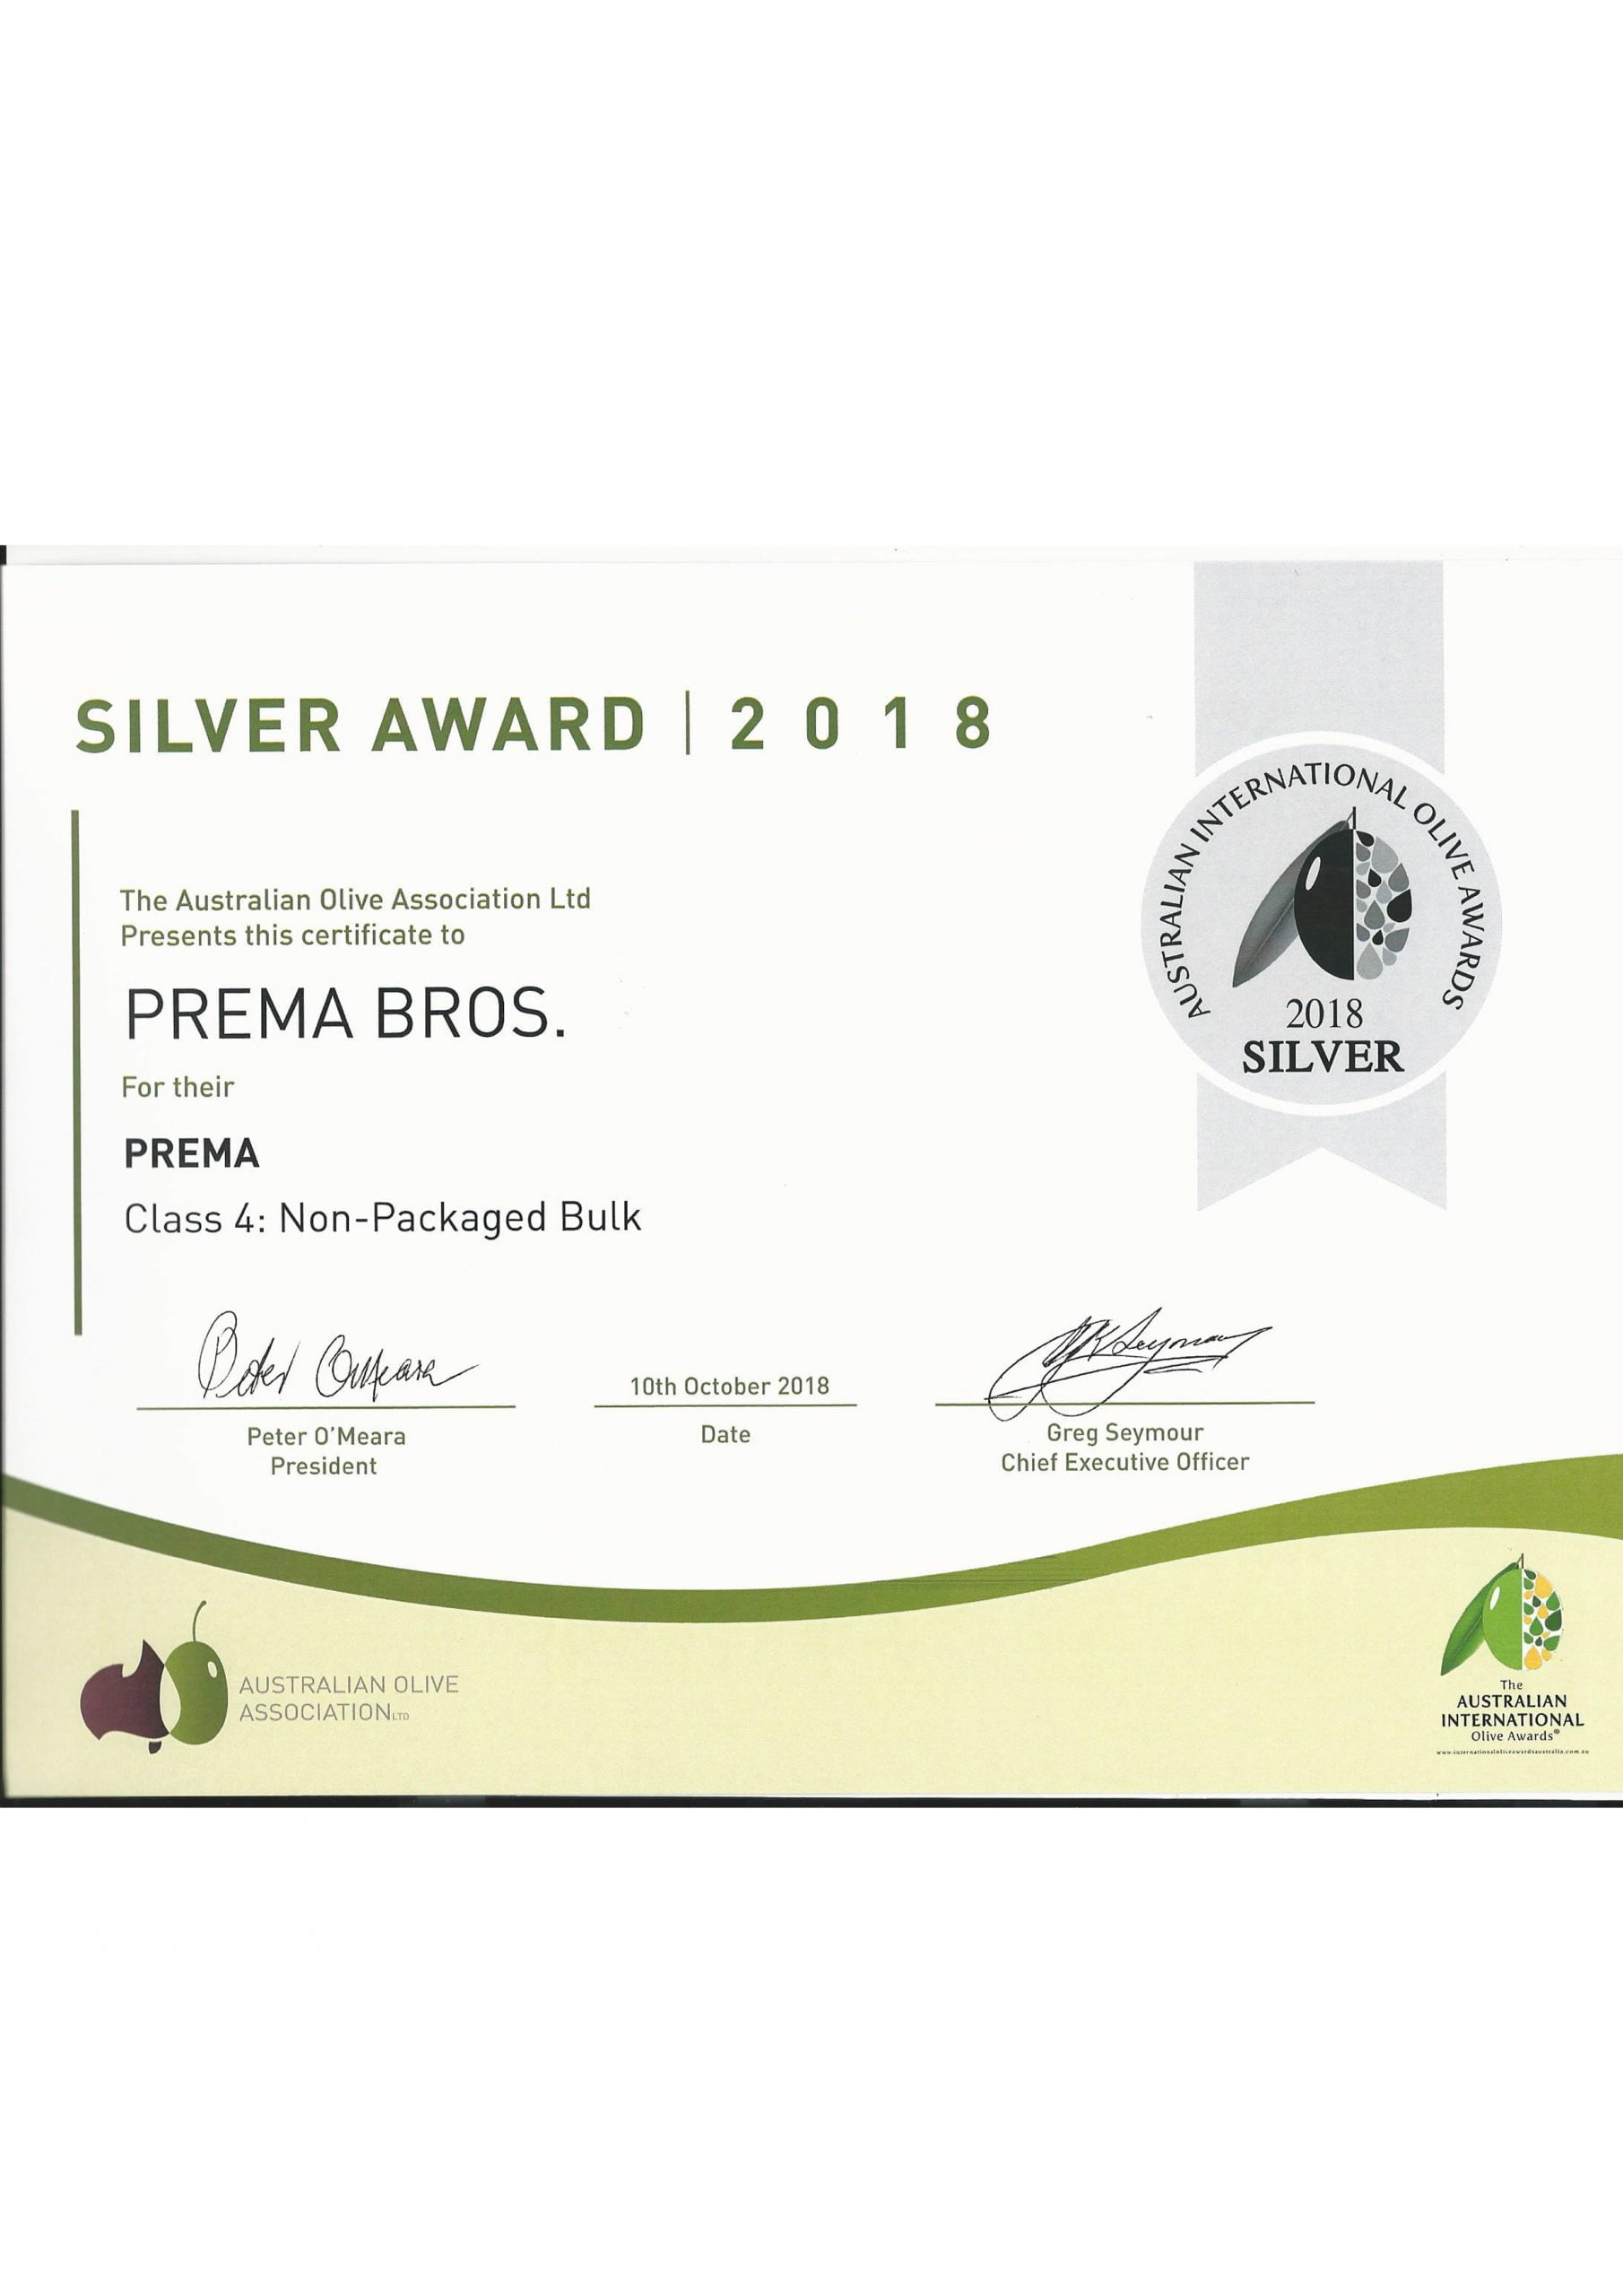 Silver award extra virgin olive oil